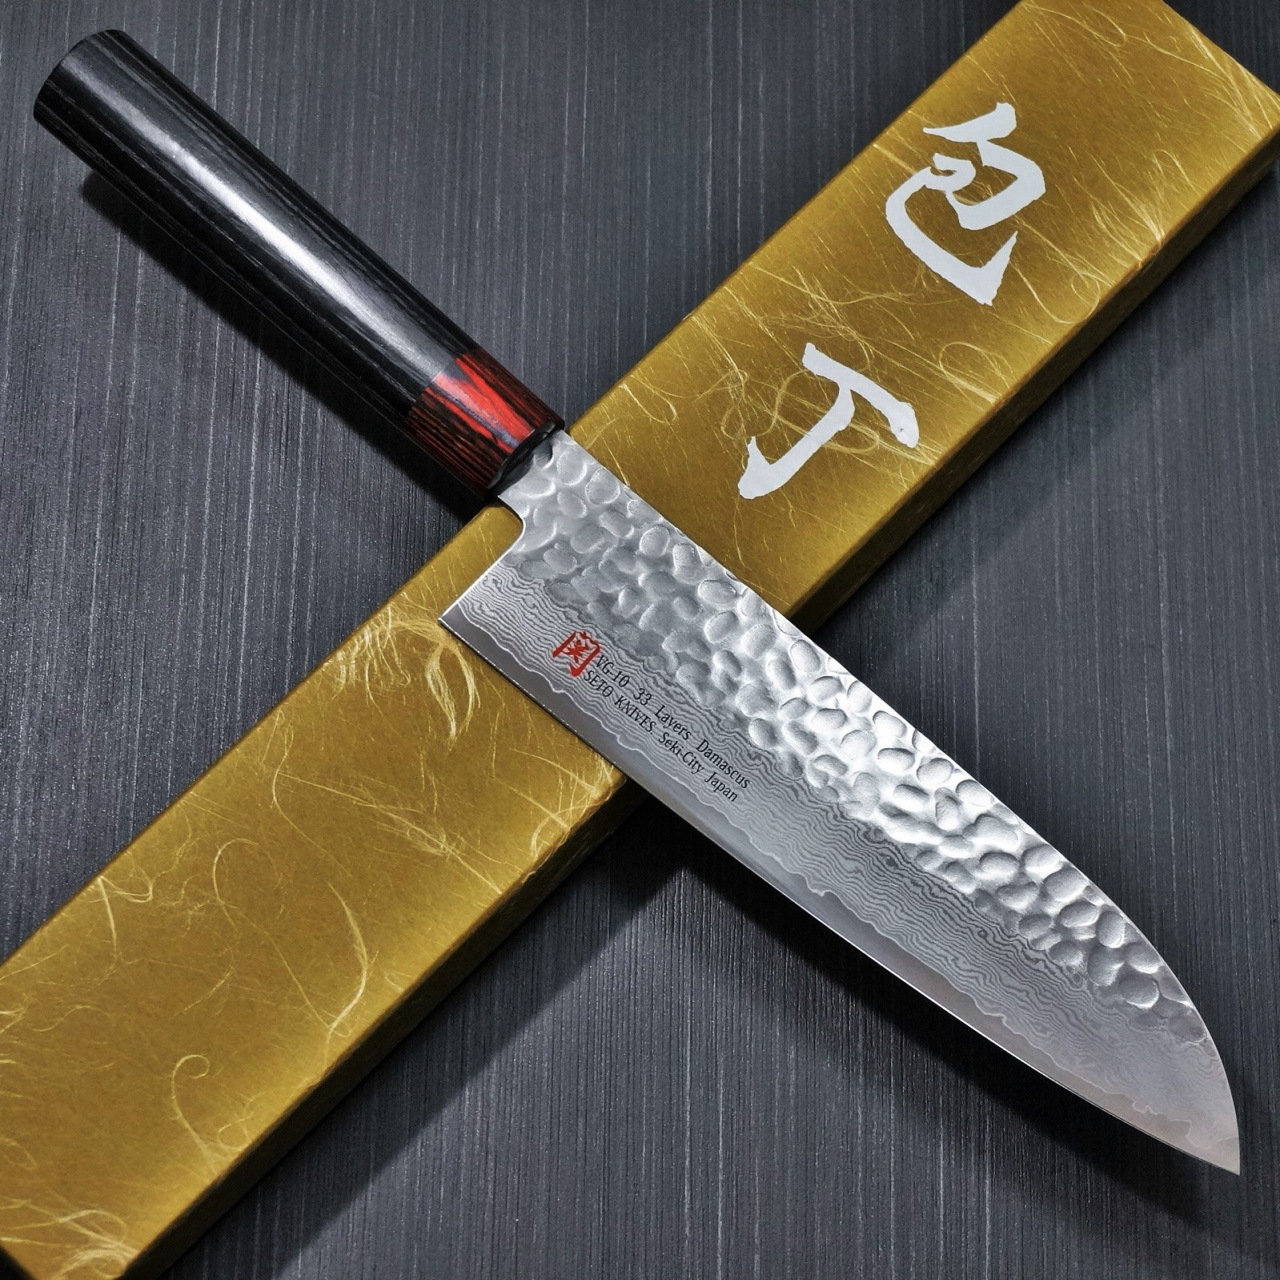 chefslocker japanese chefs knives asian knives new seto iseya i 5 33 layered hammered damascus santoku kitchen knife with vg10 core 180mm